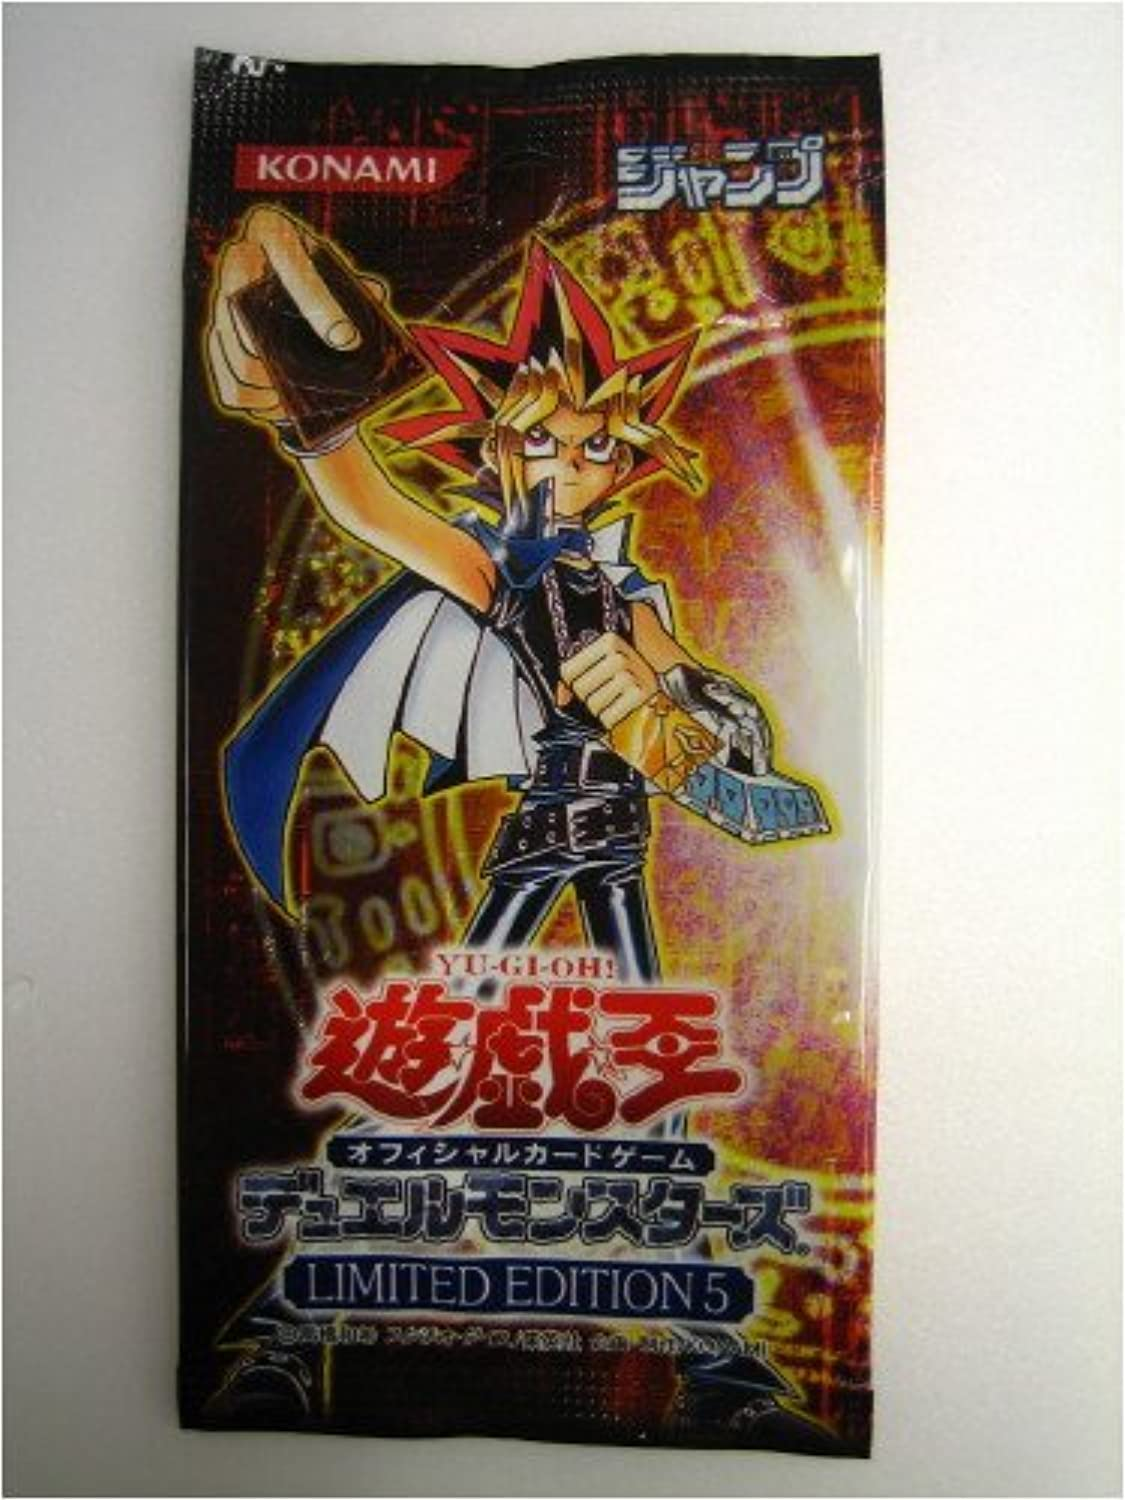 bajo precio del 40% Spellbook than than than 5 Madou swordsman LIMITED EDITION 5 Rimitteddo edition, negro Magician Girl, Soul Taker, of magic, Magicians, Vuarukiria (japan import)  marca en liquidación de venta